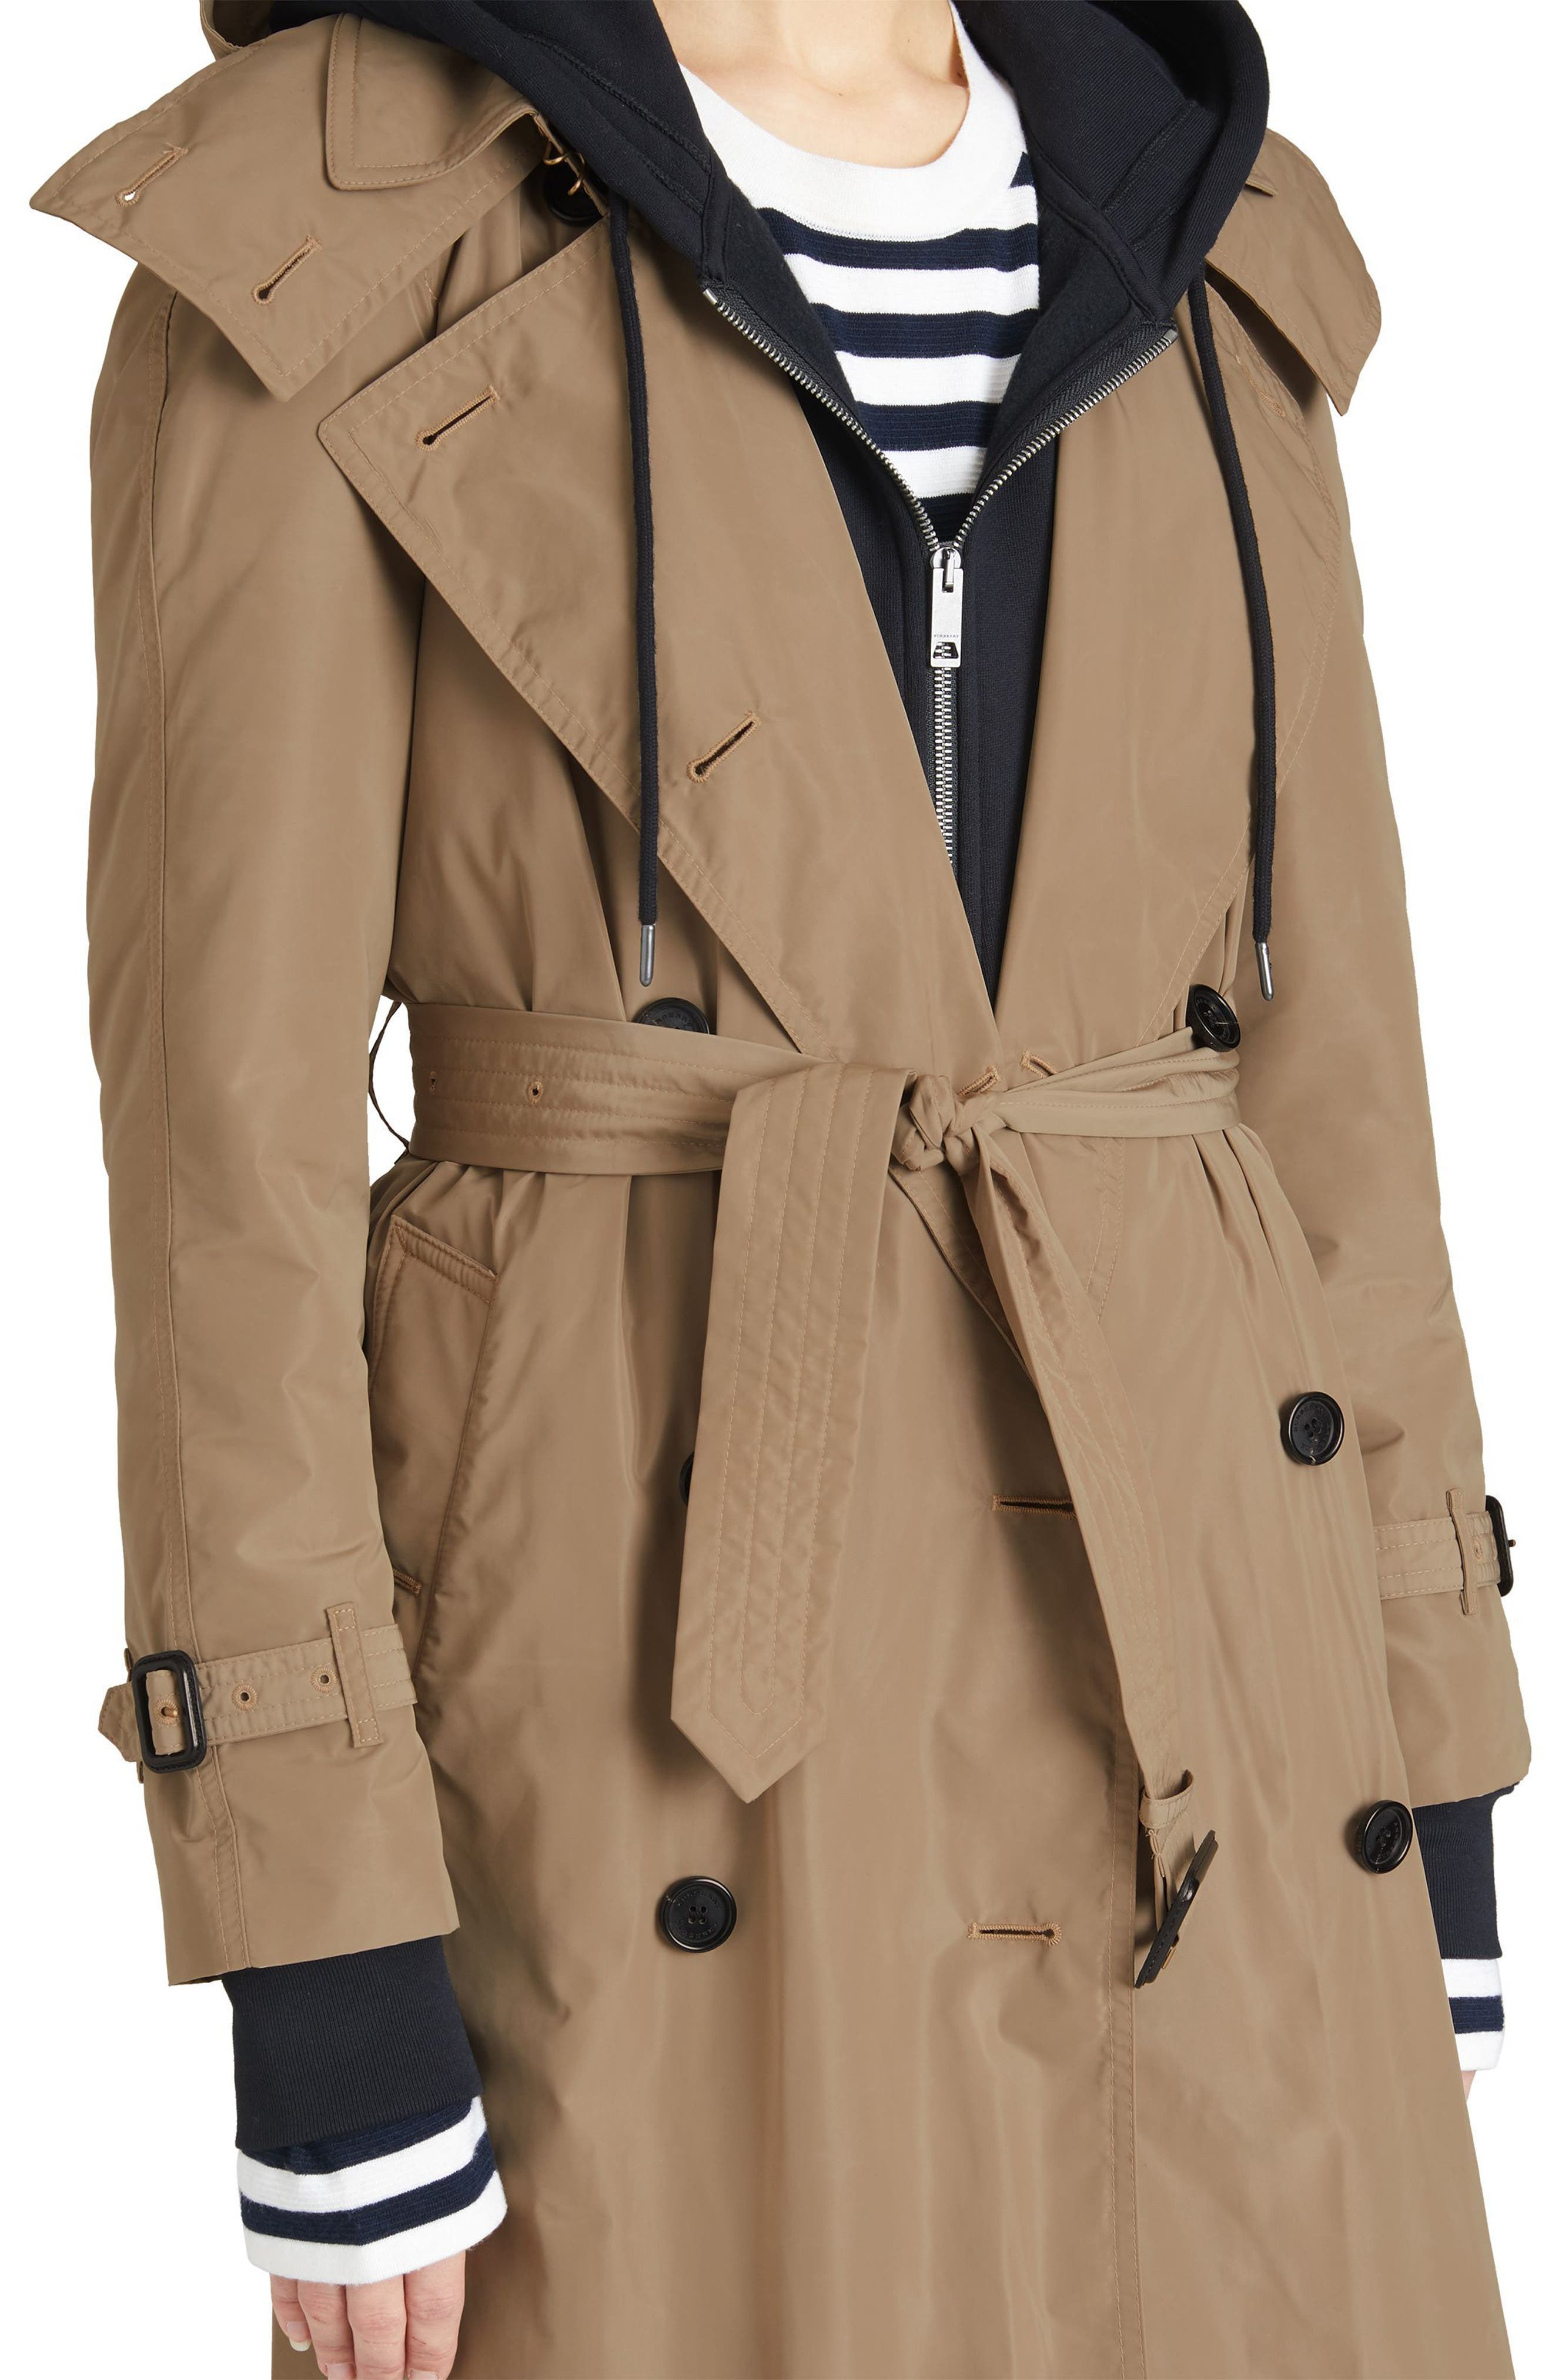 Amberford Taffeta Trench Coat with Detachable Hood,                             Alternate thumbnail 4, color,                             Sisal